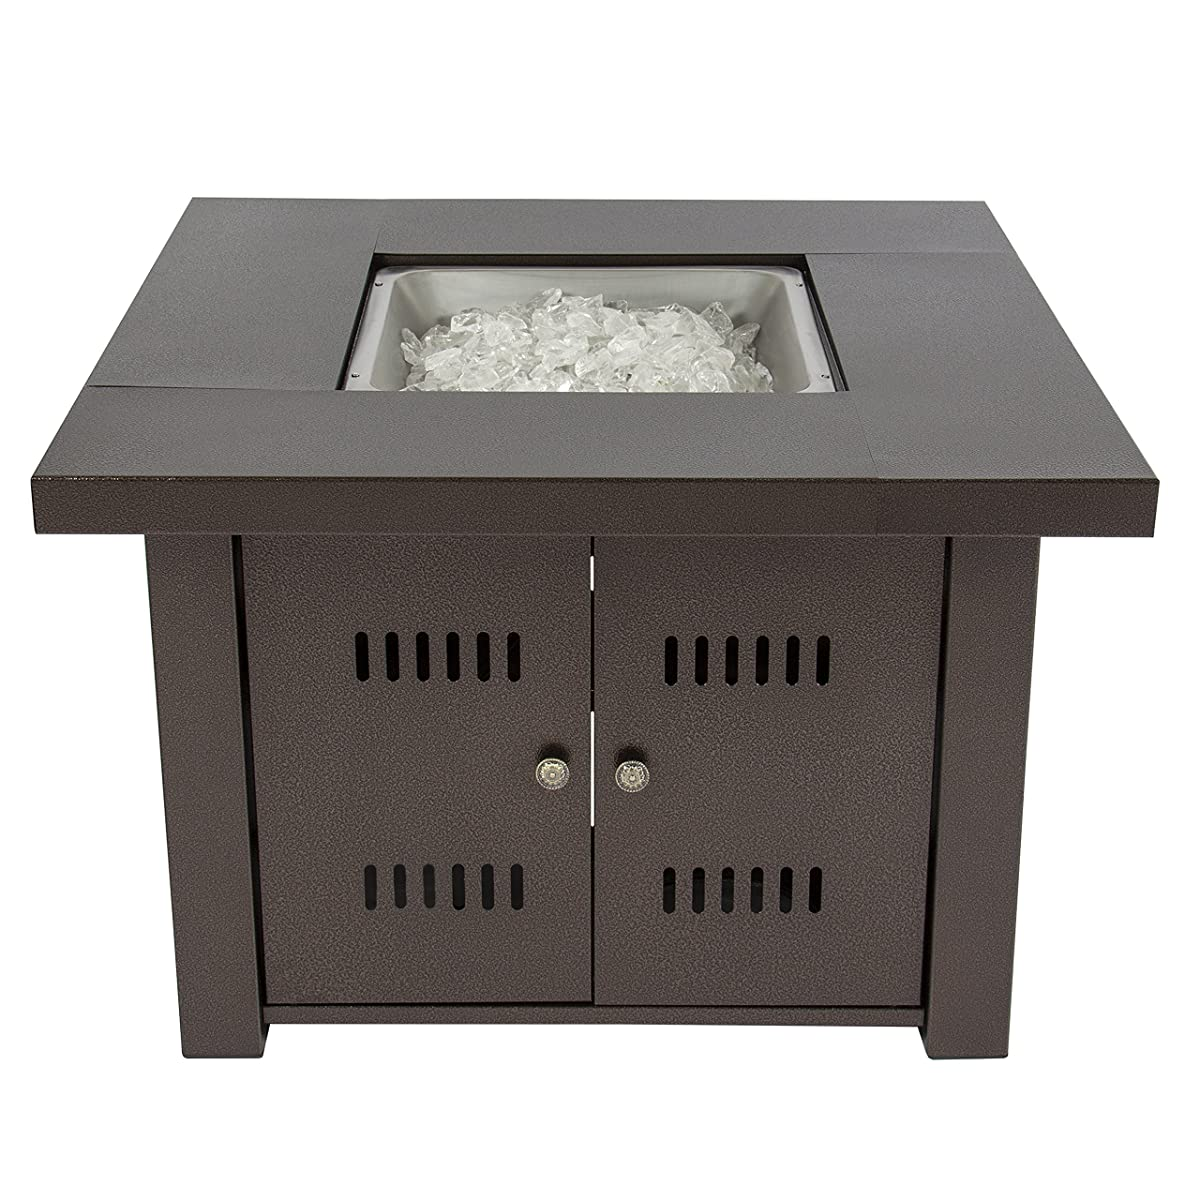 Gas Outdoor Fire Pit Table with Hammered-Antique-Bronze Finish and Fire Pit Cover Included